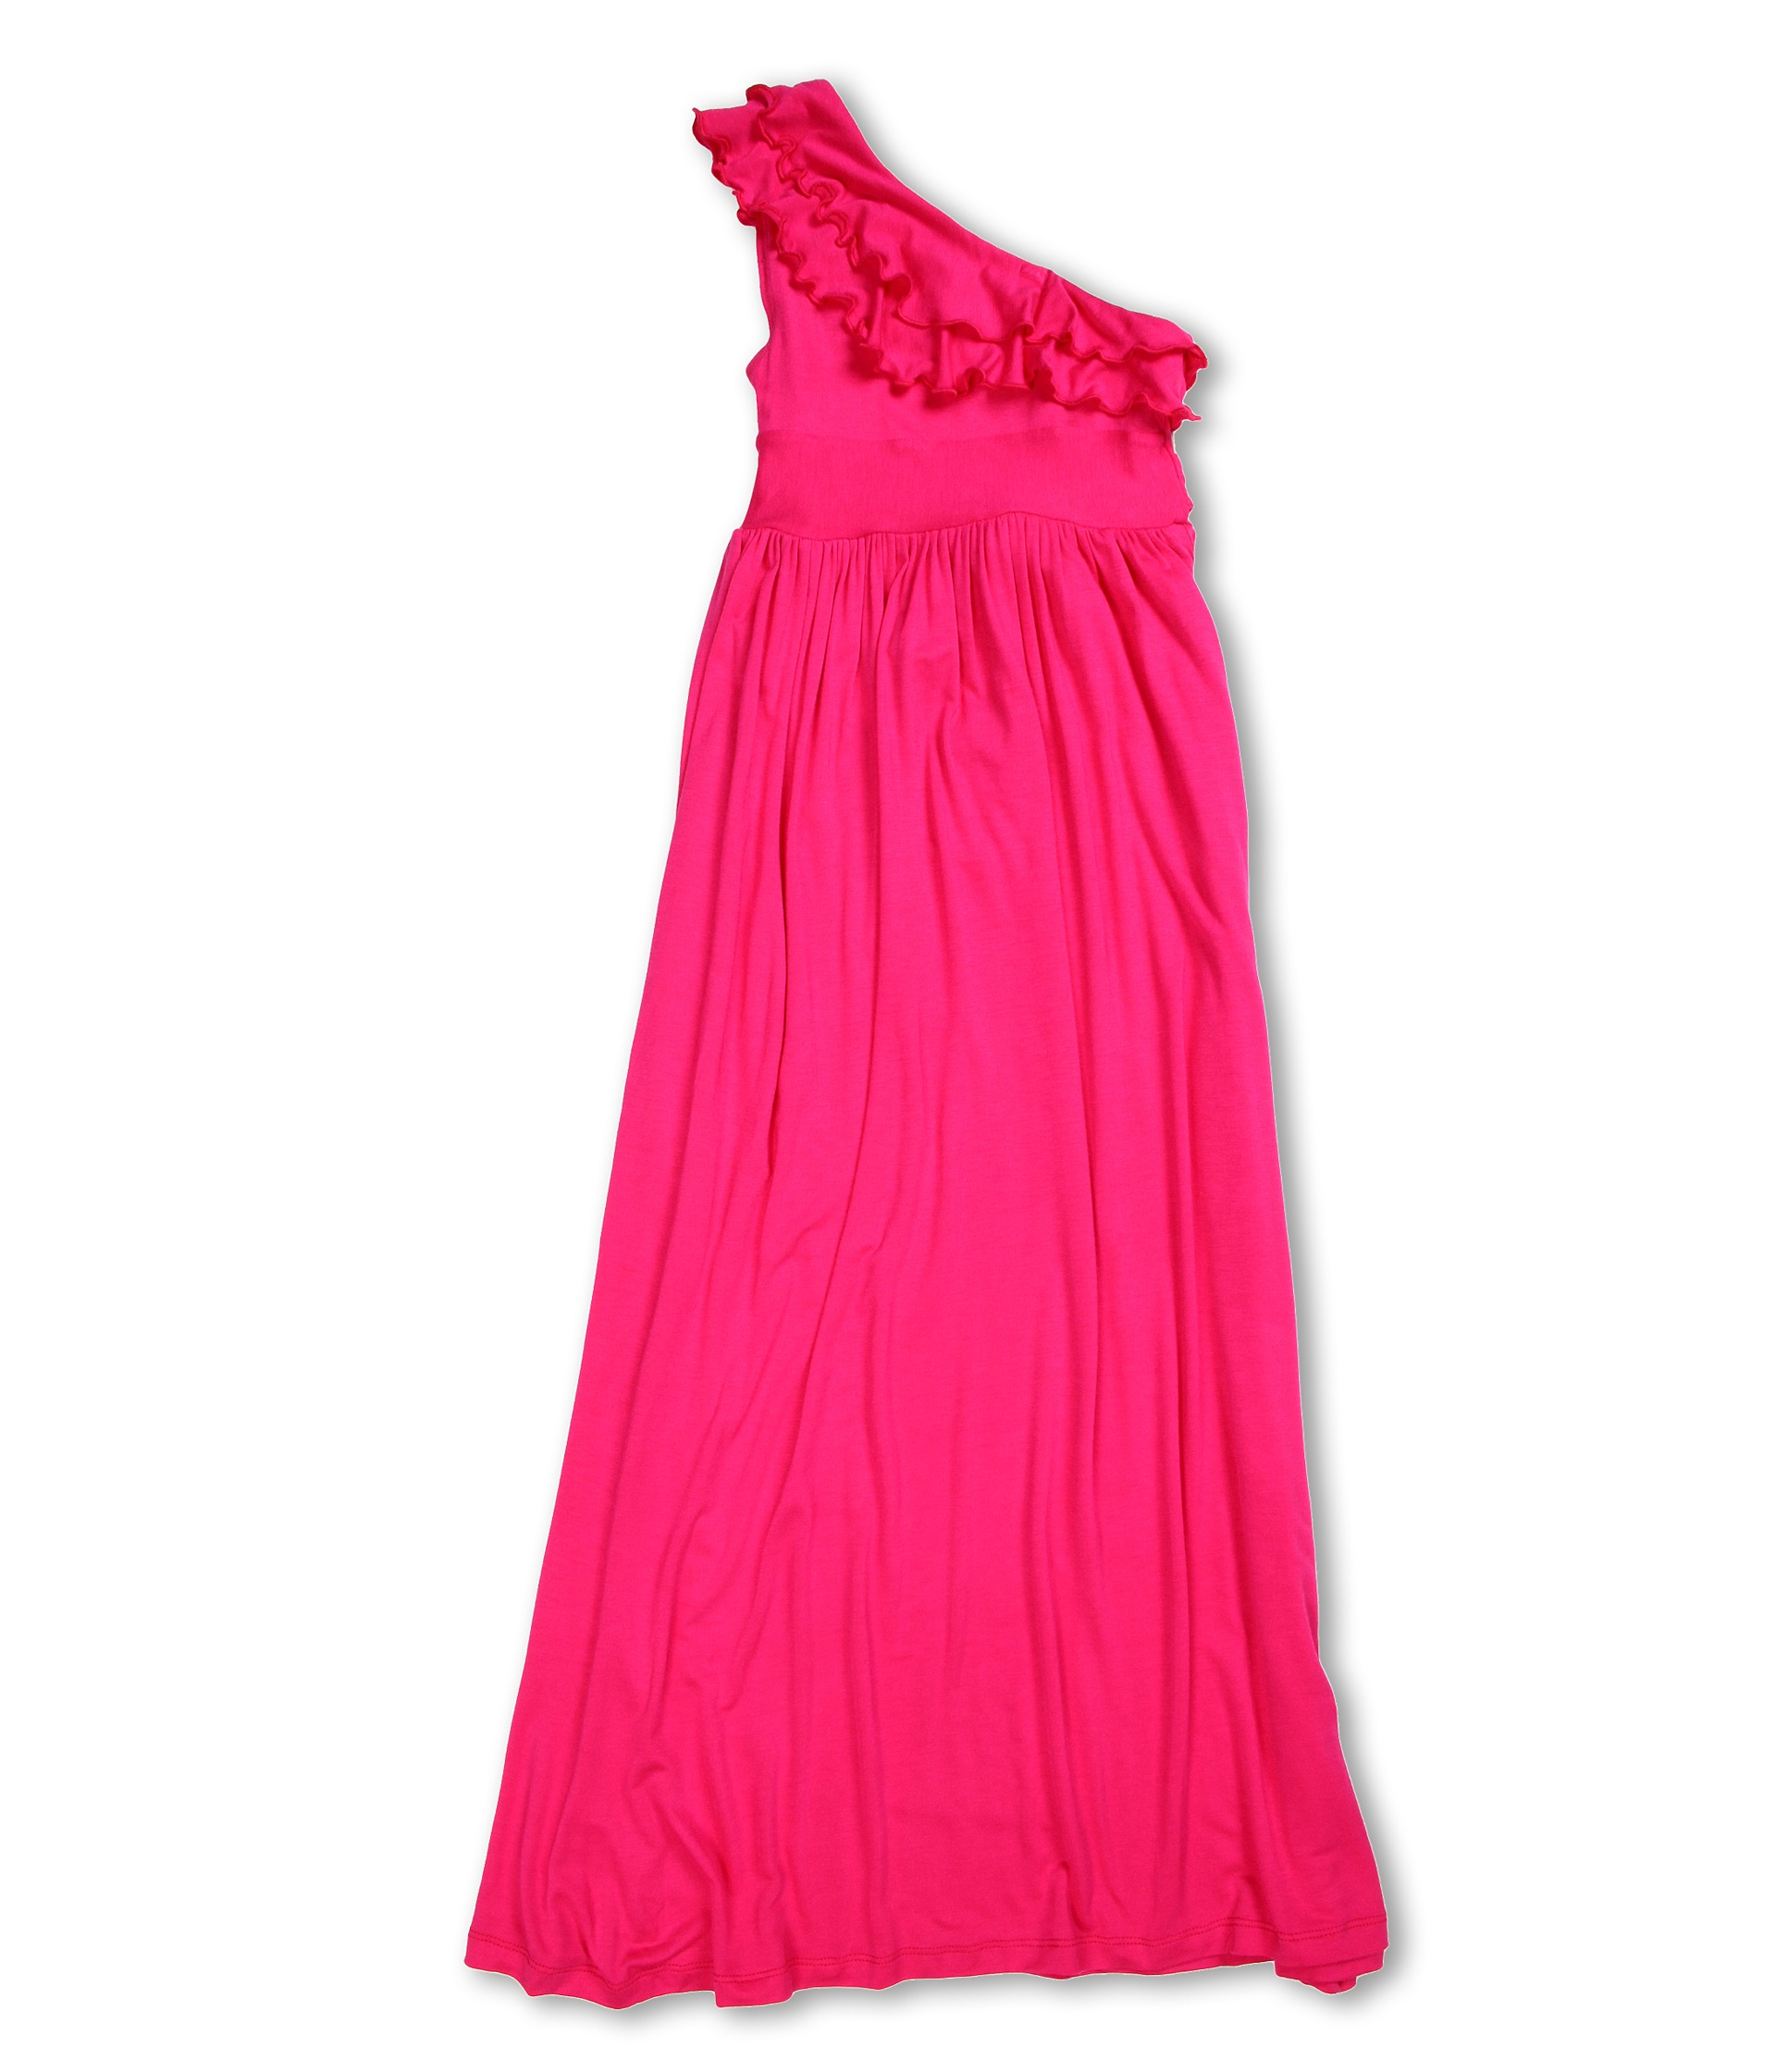 Shop for maxi dresses at forex-trade1.ga Free Shipping. Free Returns. All the time. Skip navigation. Earn $20 Notes with Nordstrom Rewards. See details. Kids' Clothing. Girls (2T-6X) Girls () Show Dress Length. Short Knee-Length Midi Long High Low. Show Sleeve Length. Sleeveless Short Sleeve 3/4 Sleeve Long Sleeve.